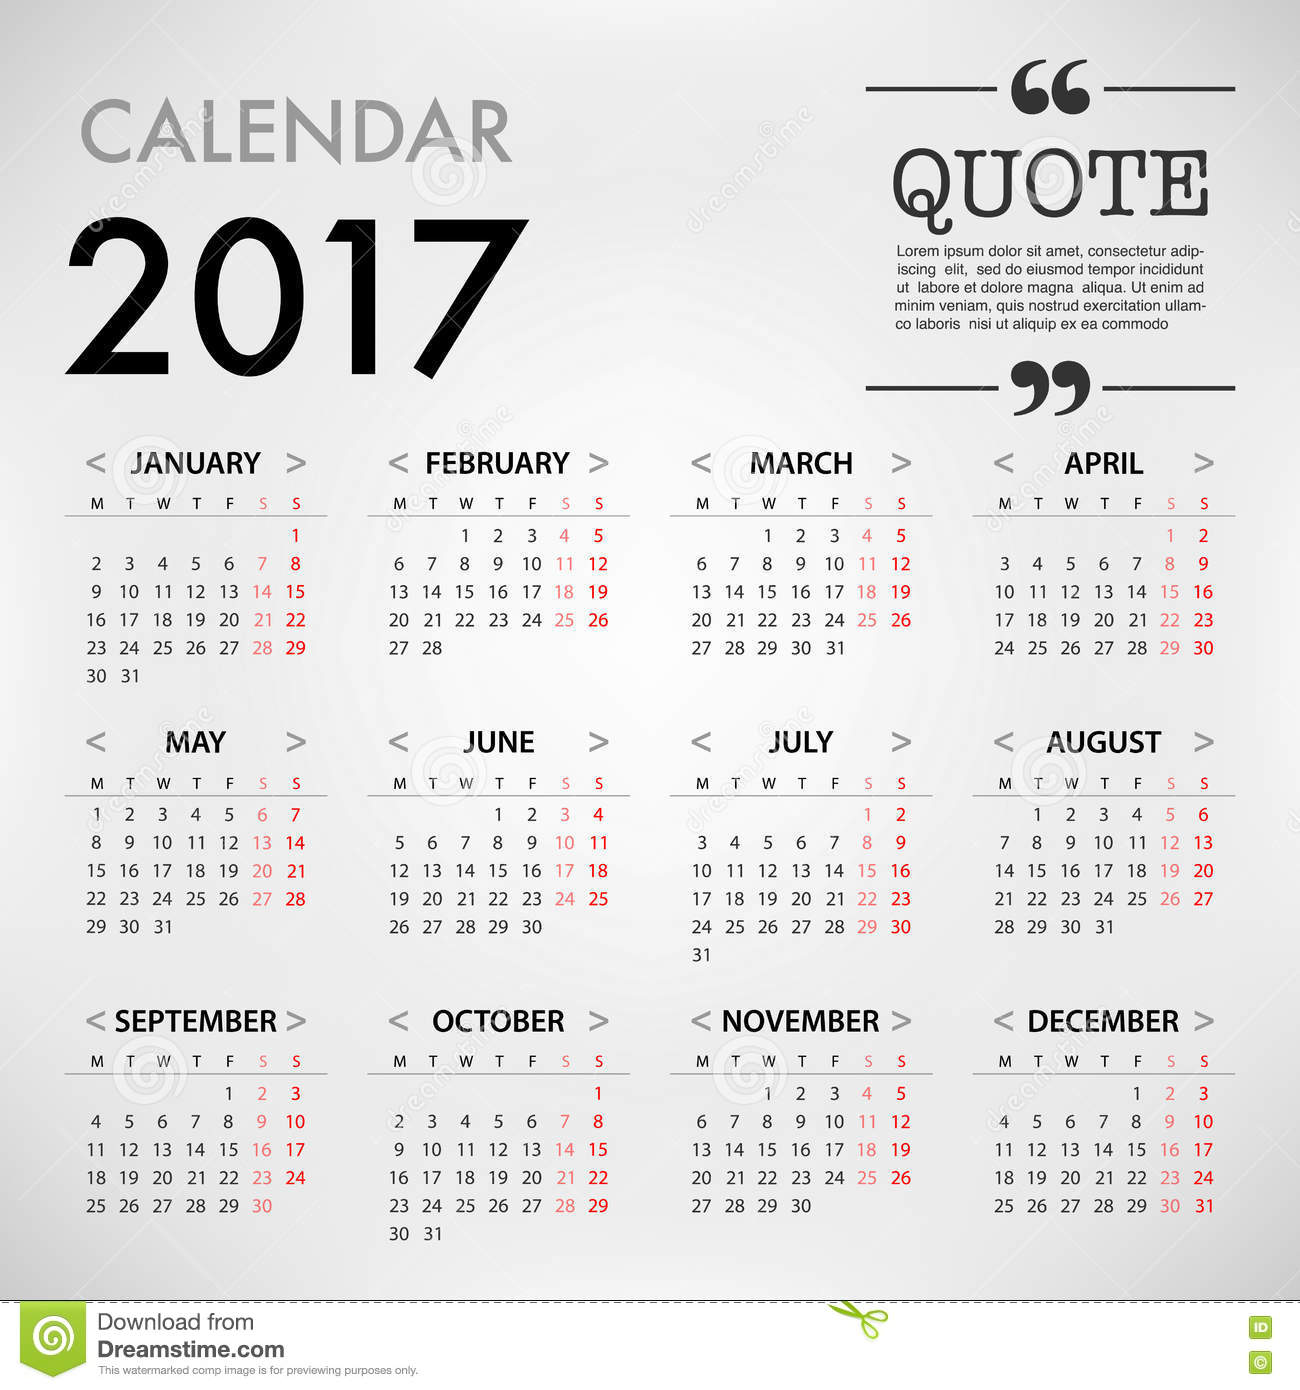 Calendar Organization Quotes : Calendar for template design on white background